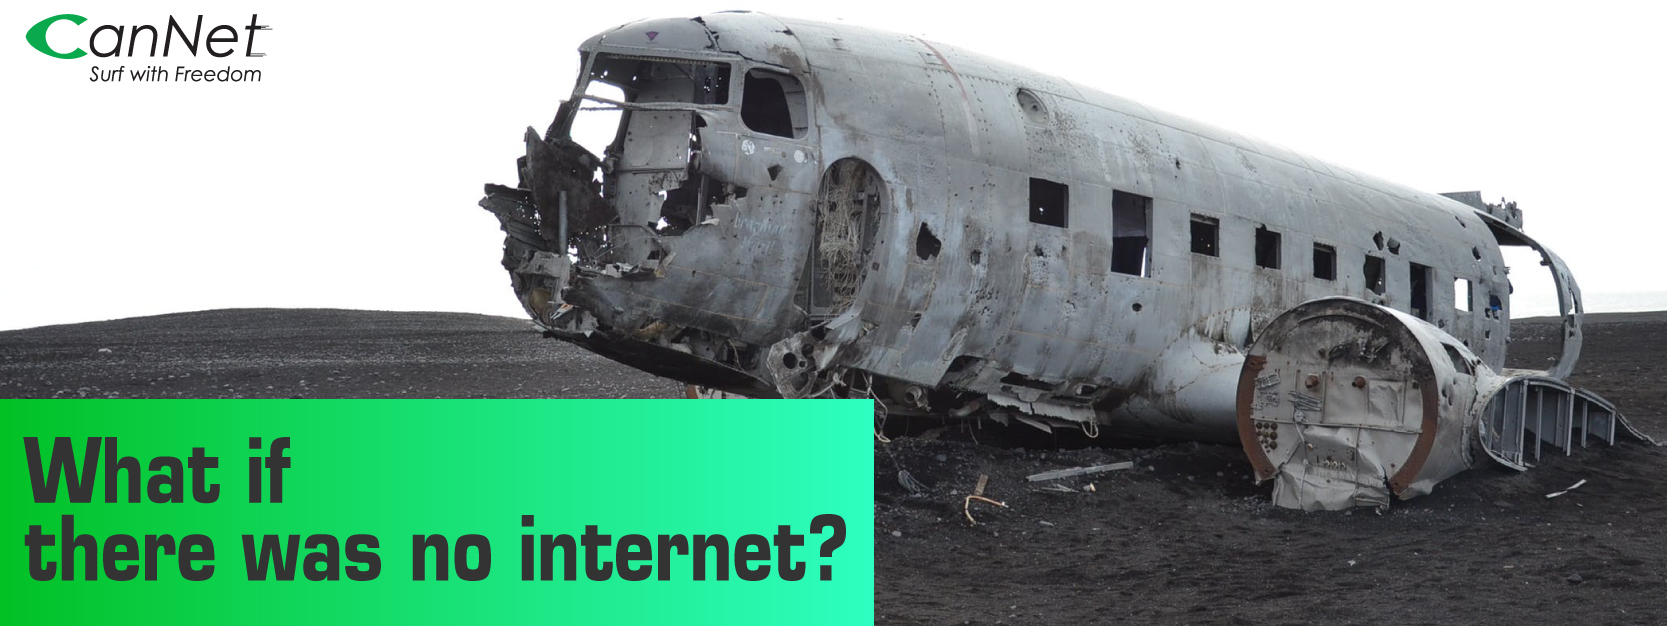 WHAT IF INTERNET DIDN'T EXIST?